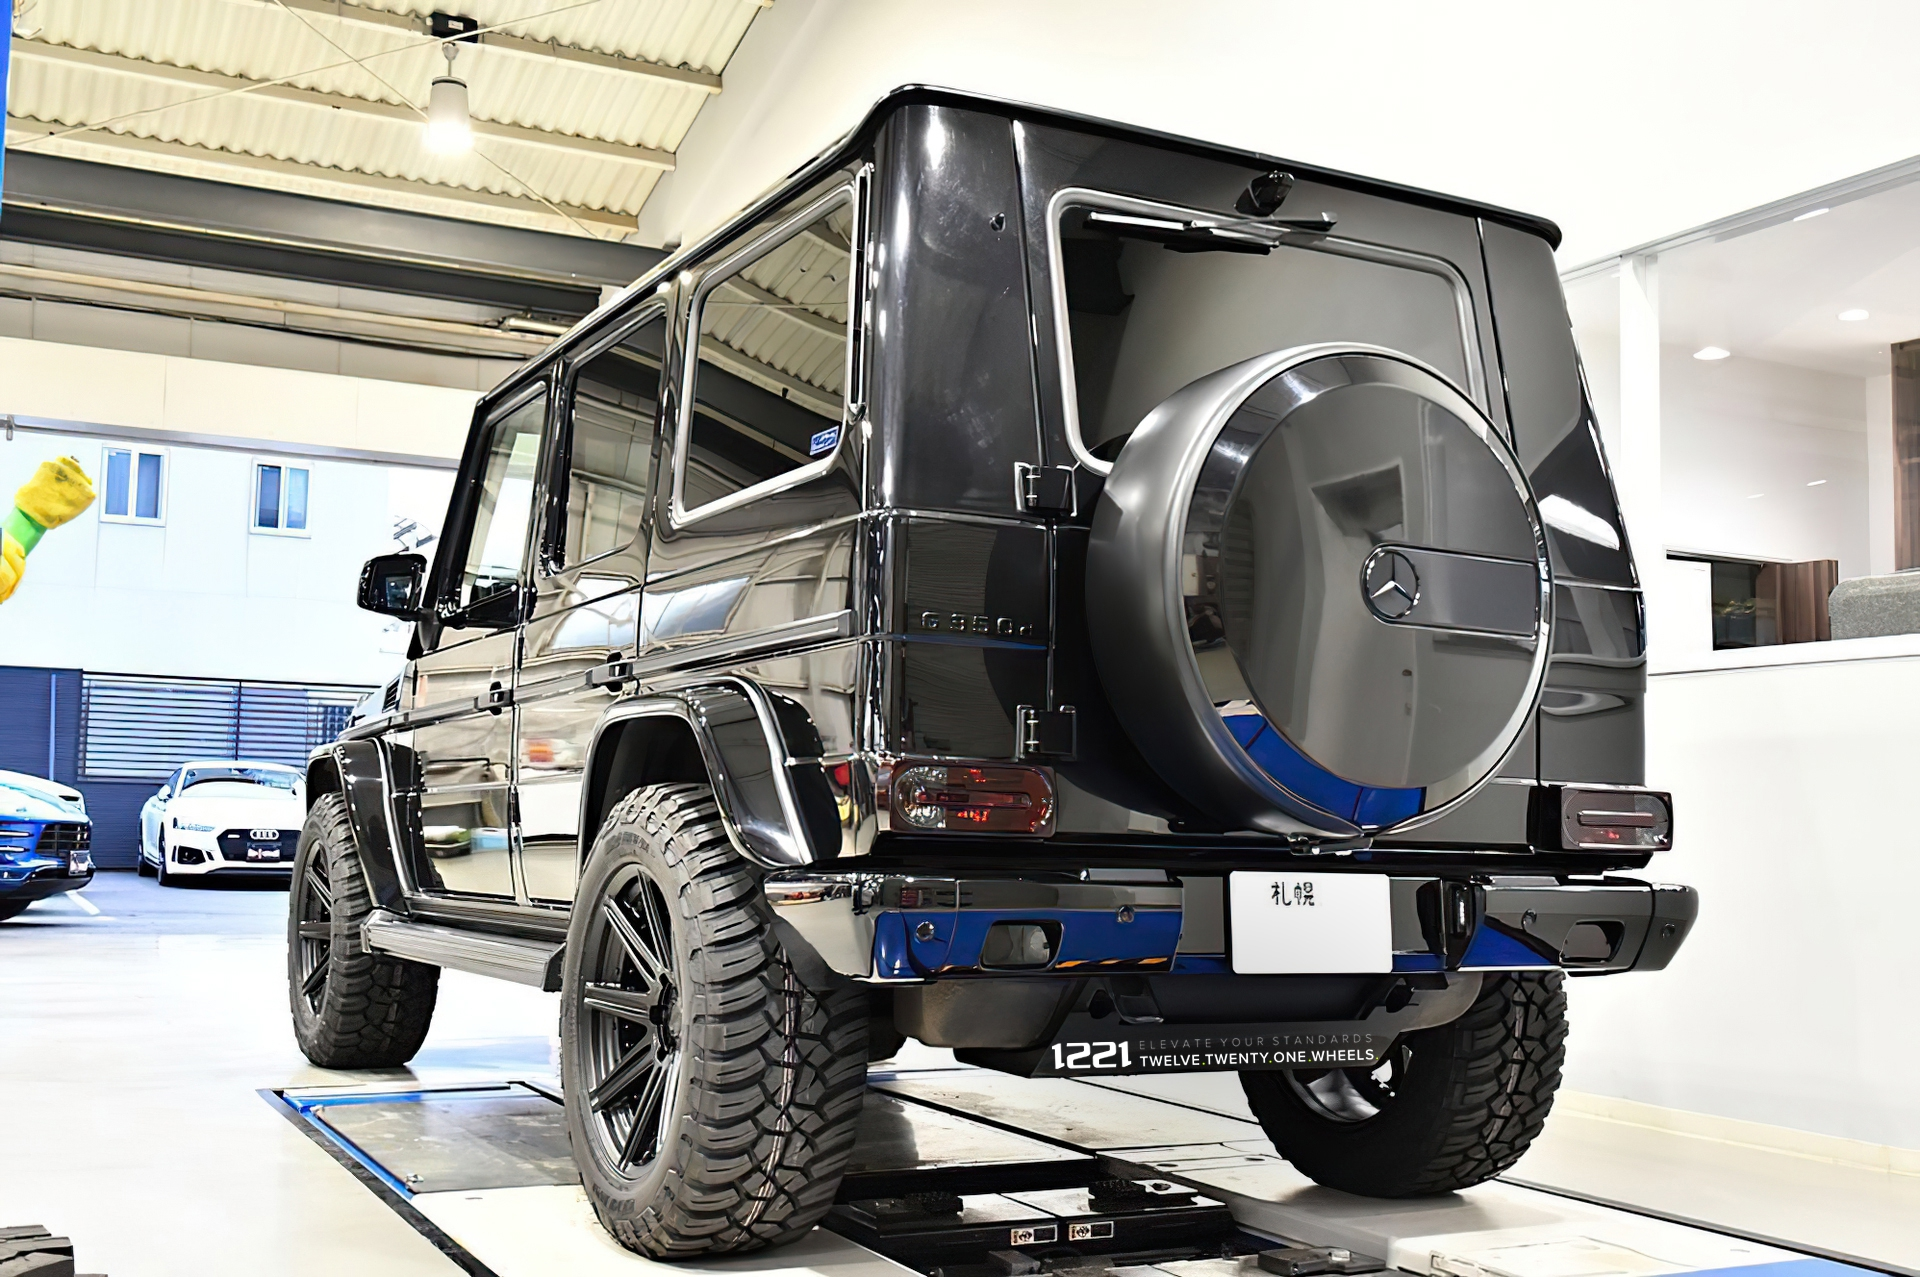 Mercedes Benz G350d Forged Wheels